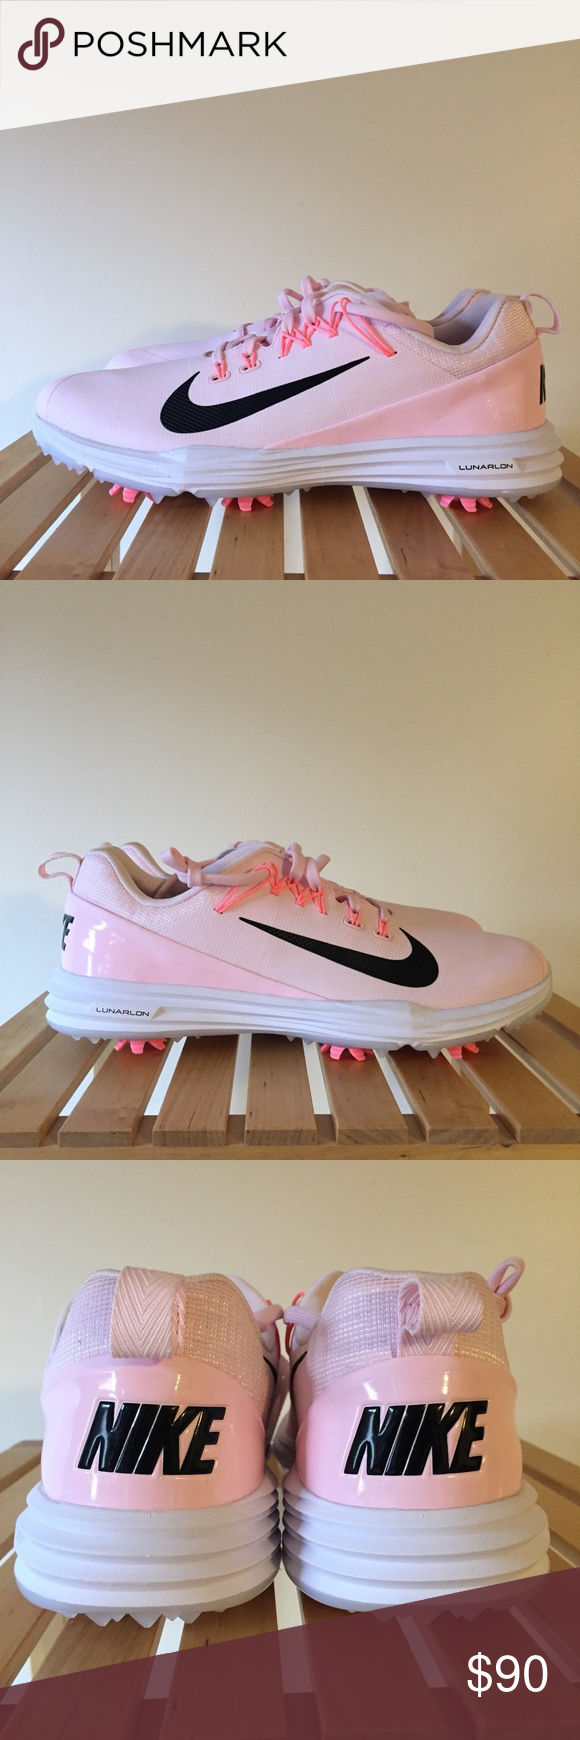 Details about Nike Lunar Command 2 Women's Golf Shoes, Pink White MSRP $135 880120 601